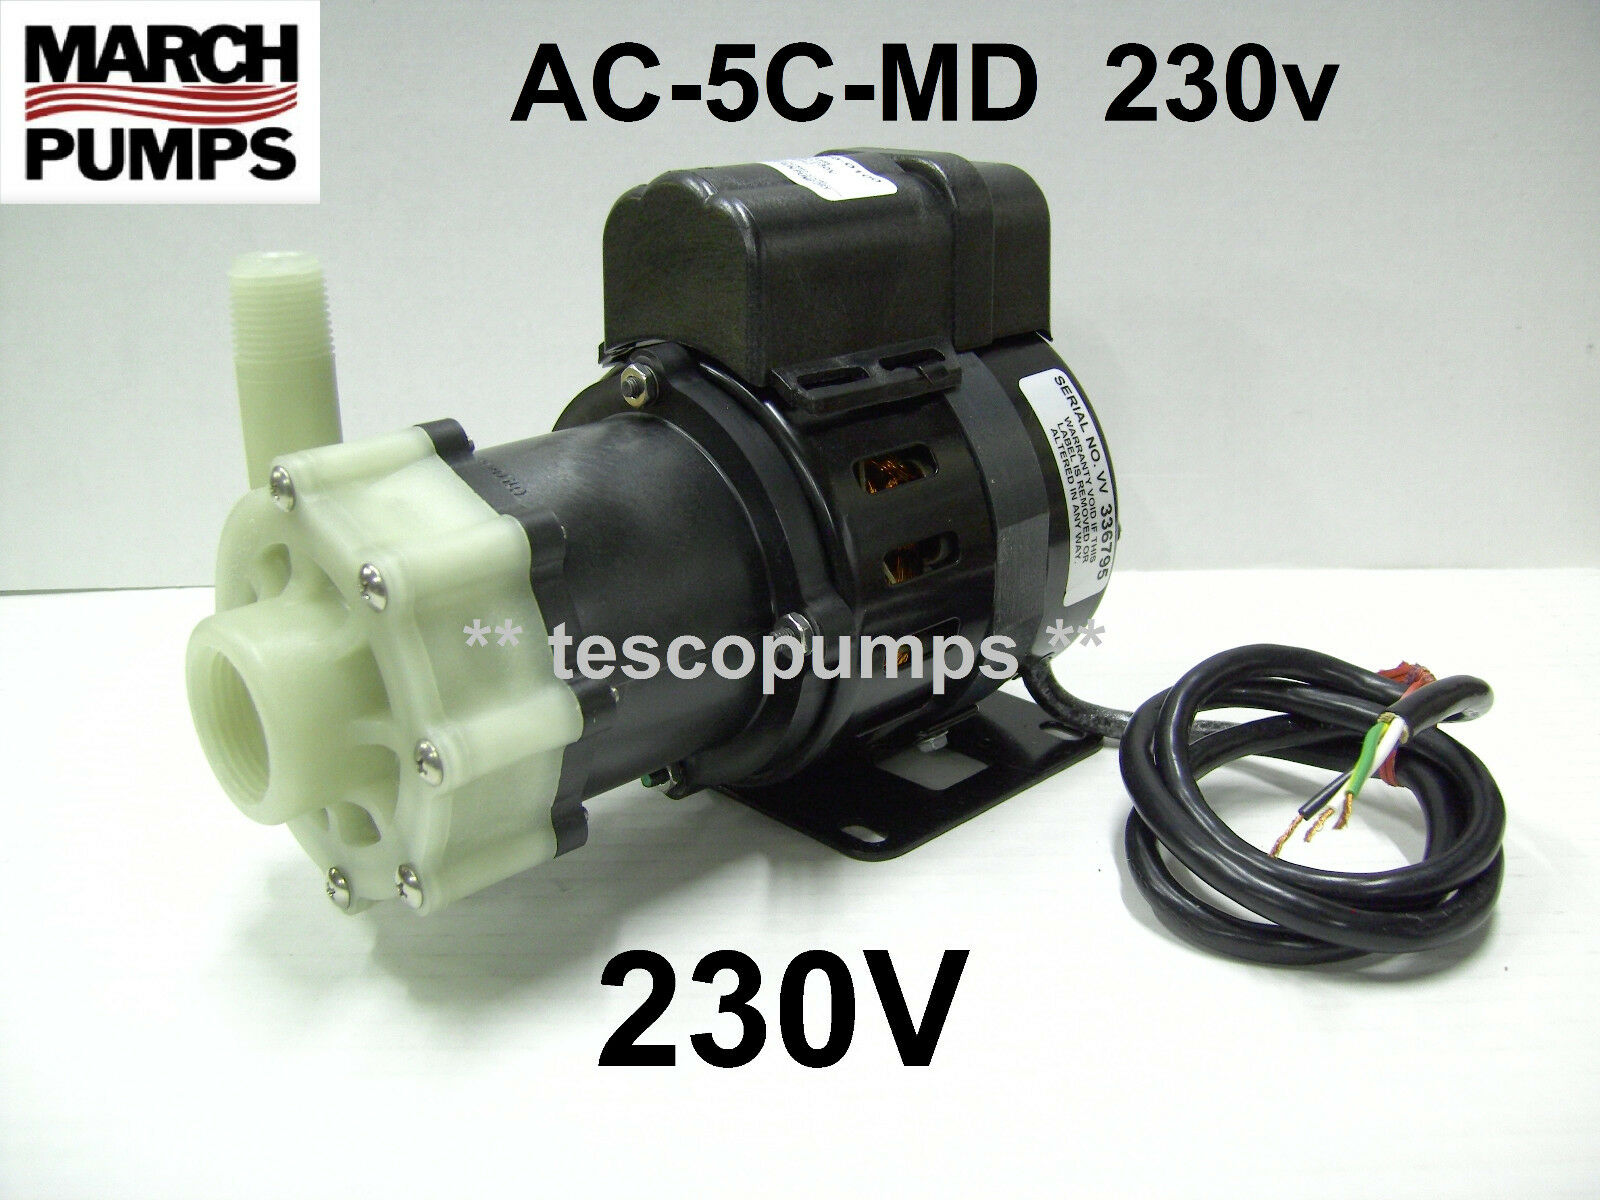 March Pump Ac 5c Md 230v 1020 Gph Replacement For Cruisair Marine Wiring Diagram Norton Secured Powered By Verisign